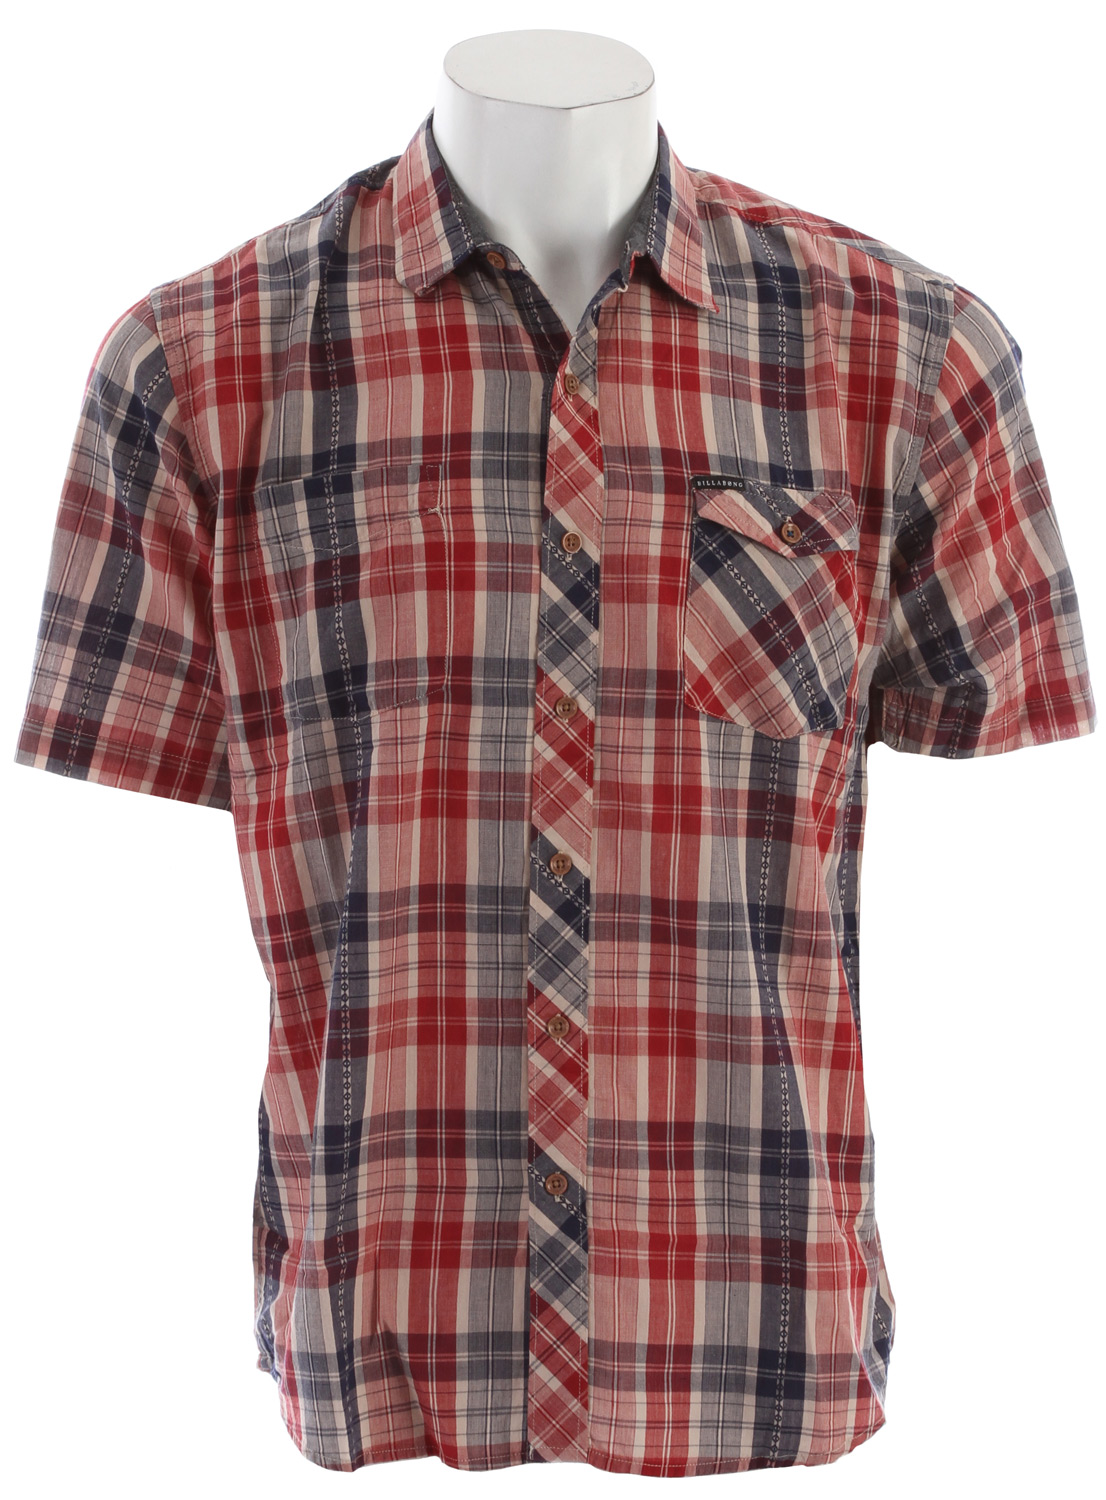 Fitness Key Features of the Billabong Dublin Shirt: Short sleeve yarn dye plaid with a vertical dobby texture running throughout Contrast pocket styling Woven labeling and chambray fabric detailing 100% cotton - $32.95